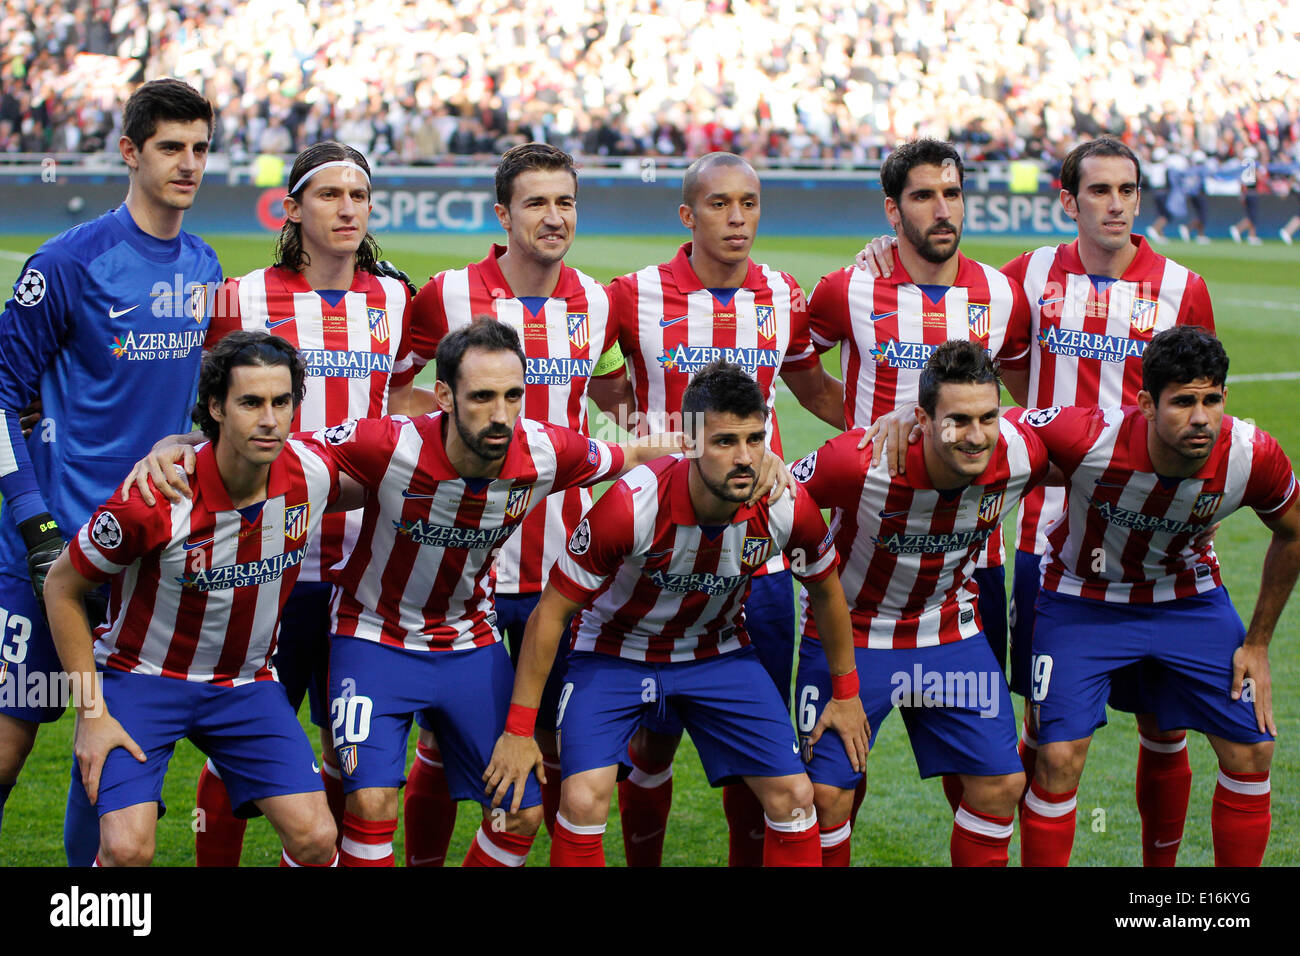 192bae476 Atlético de Madrid team line up before the match for UEFA Champions League  Final  Real Madrid x Atlético de Madrid at Luz Stadium in Lisbon